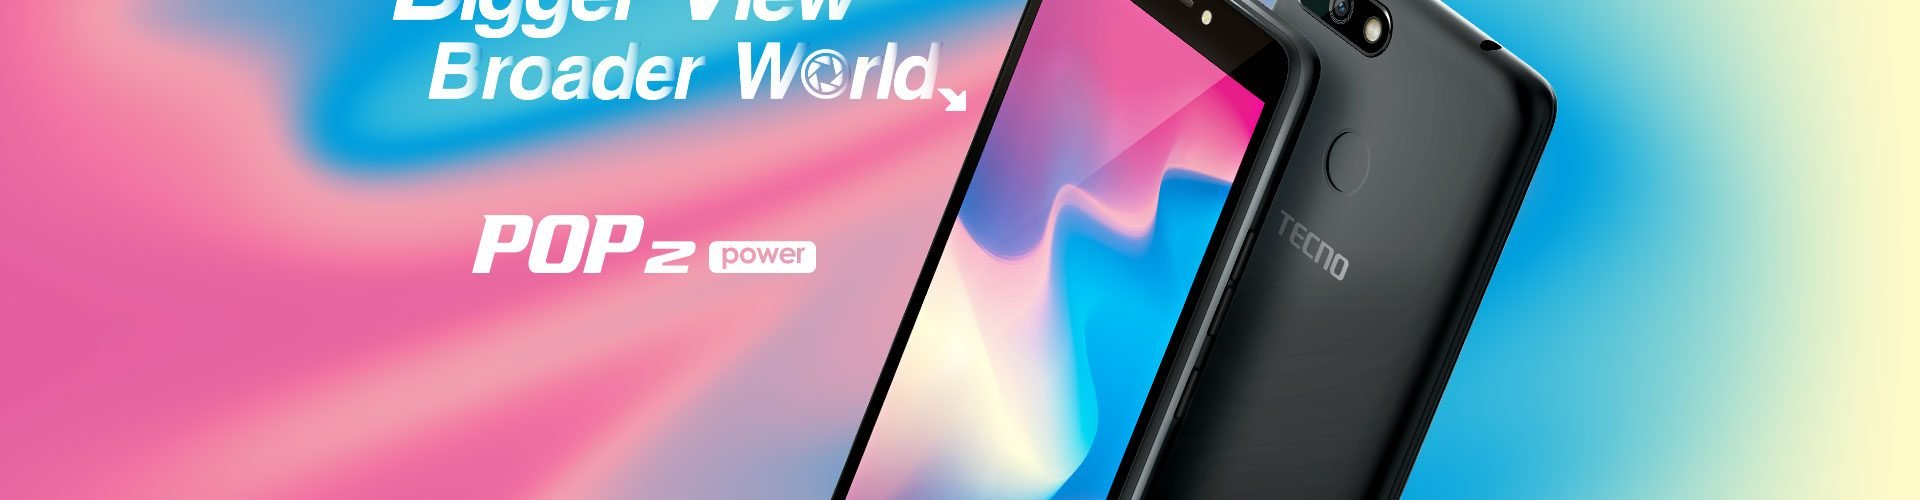 Tecno Pop 2 Power Specs, Reviews and Price - FreeBrowsingLink